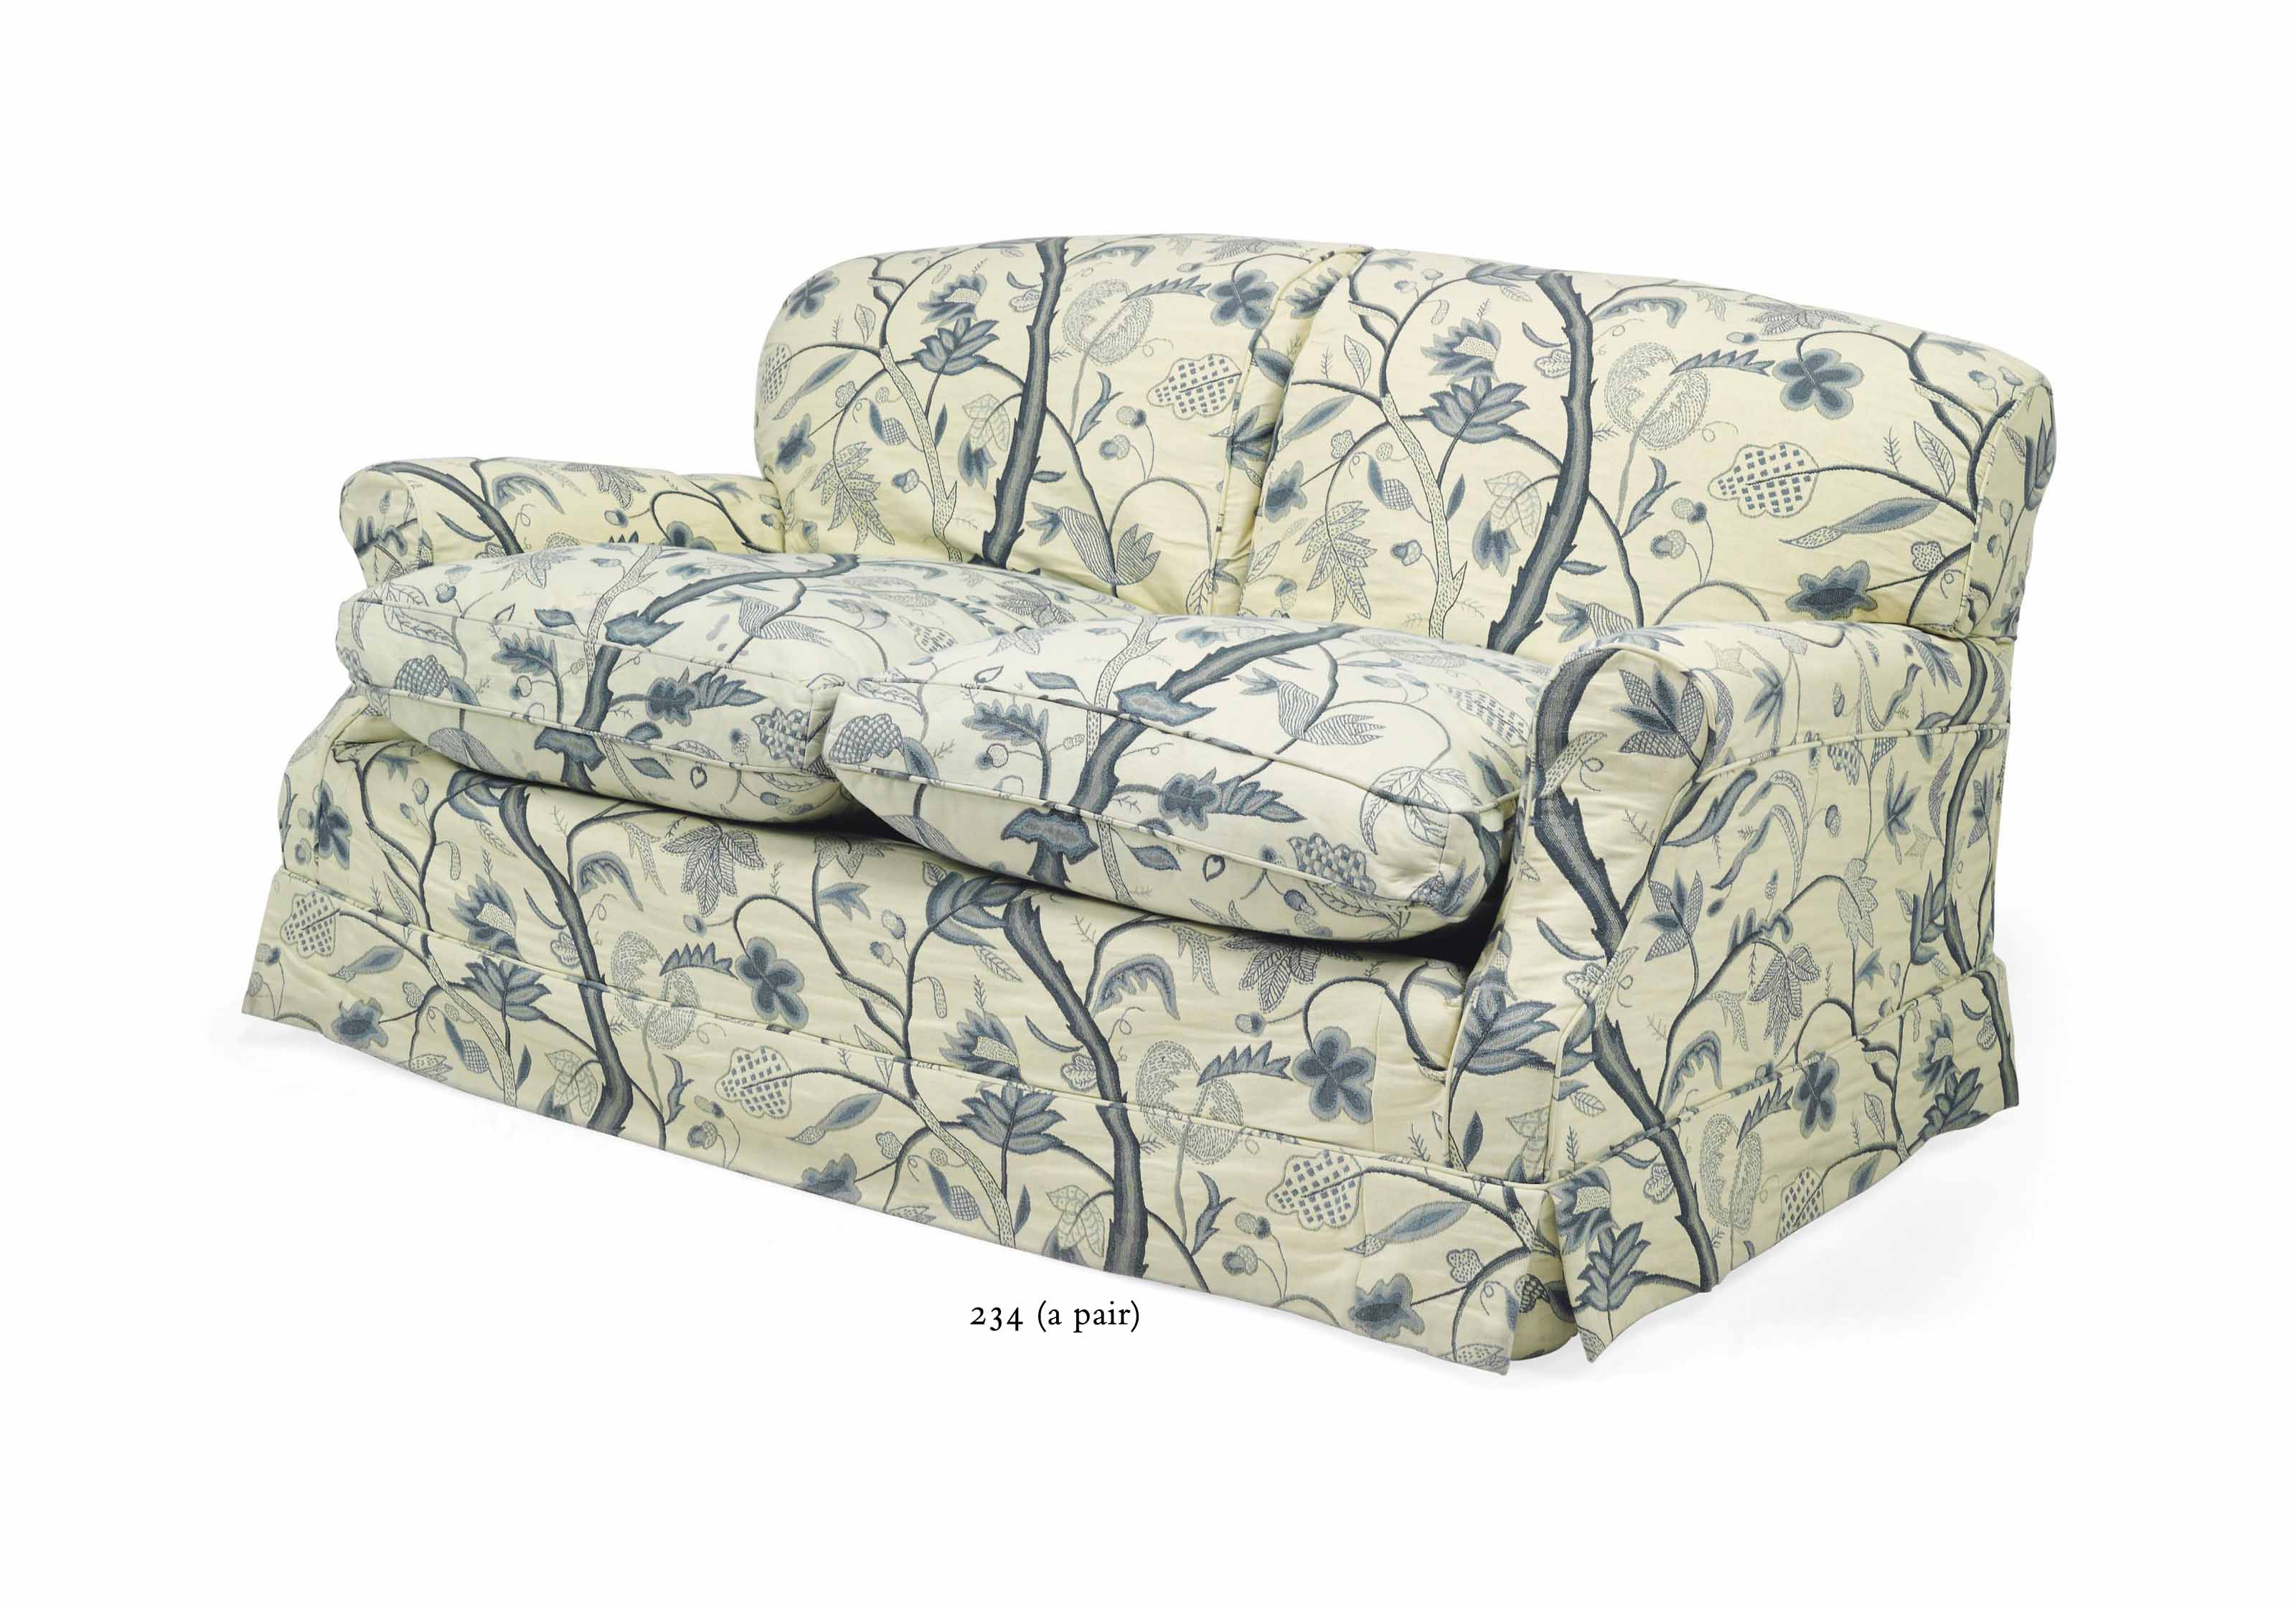 A PAIR OF 'HOWARD' CREWELWORK TWO-SEAT SOFAS